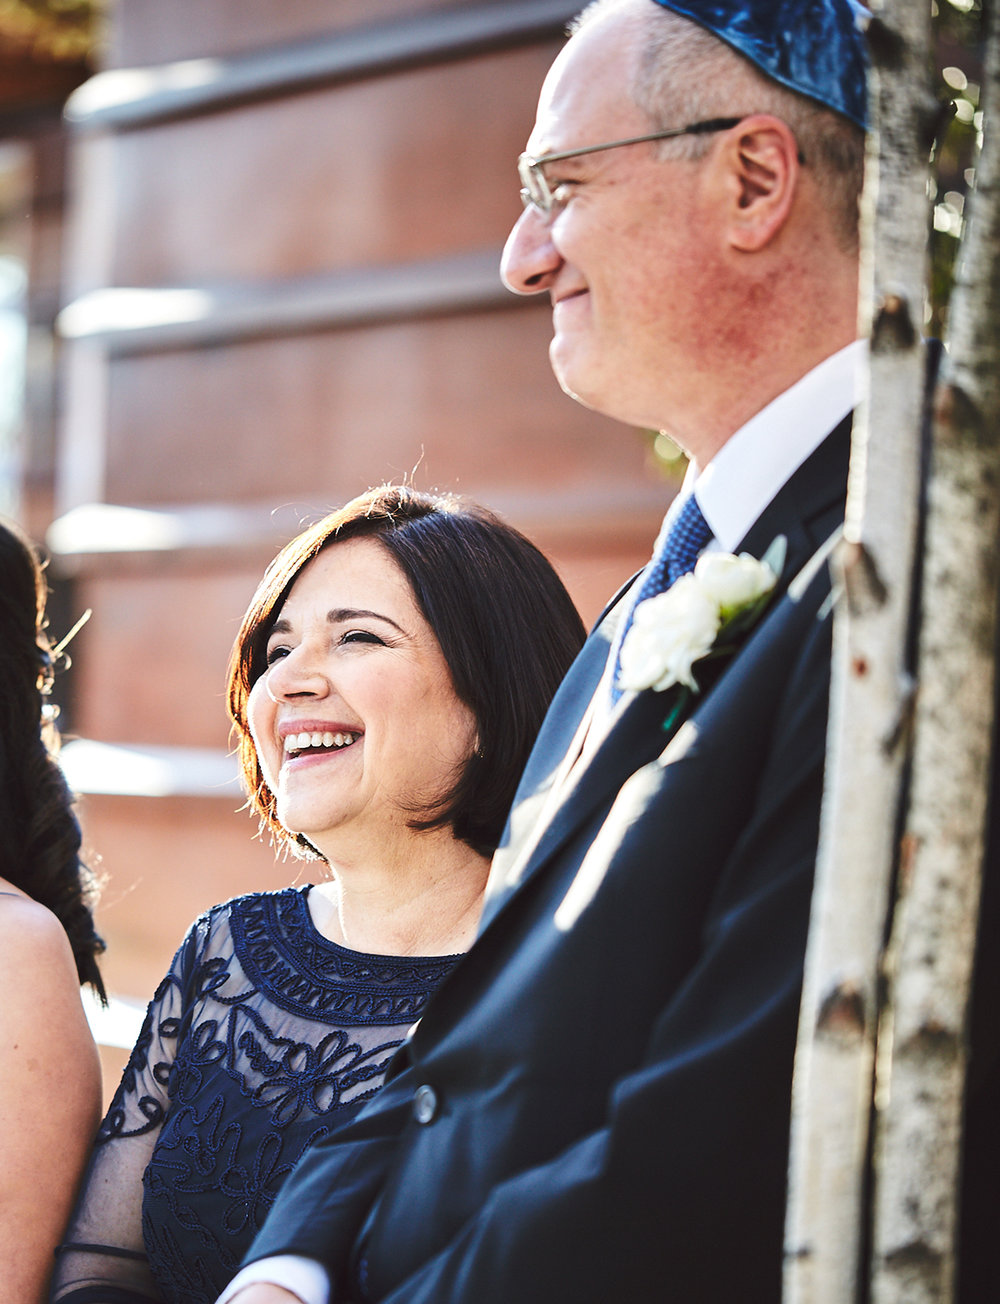 180324_StonehouseatStirlingRidgeWeddingPhotography_NJWeddingPhotographer_By_BriJohnsonWeddings_0102.jpg